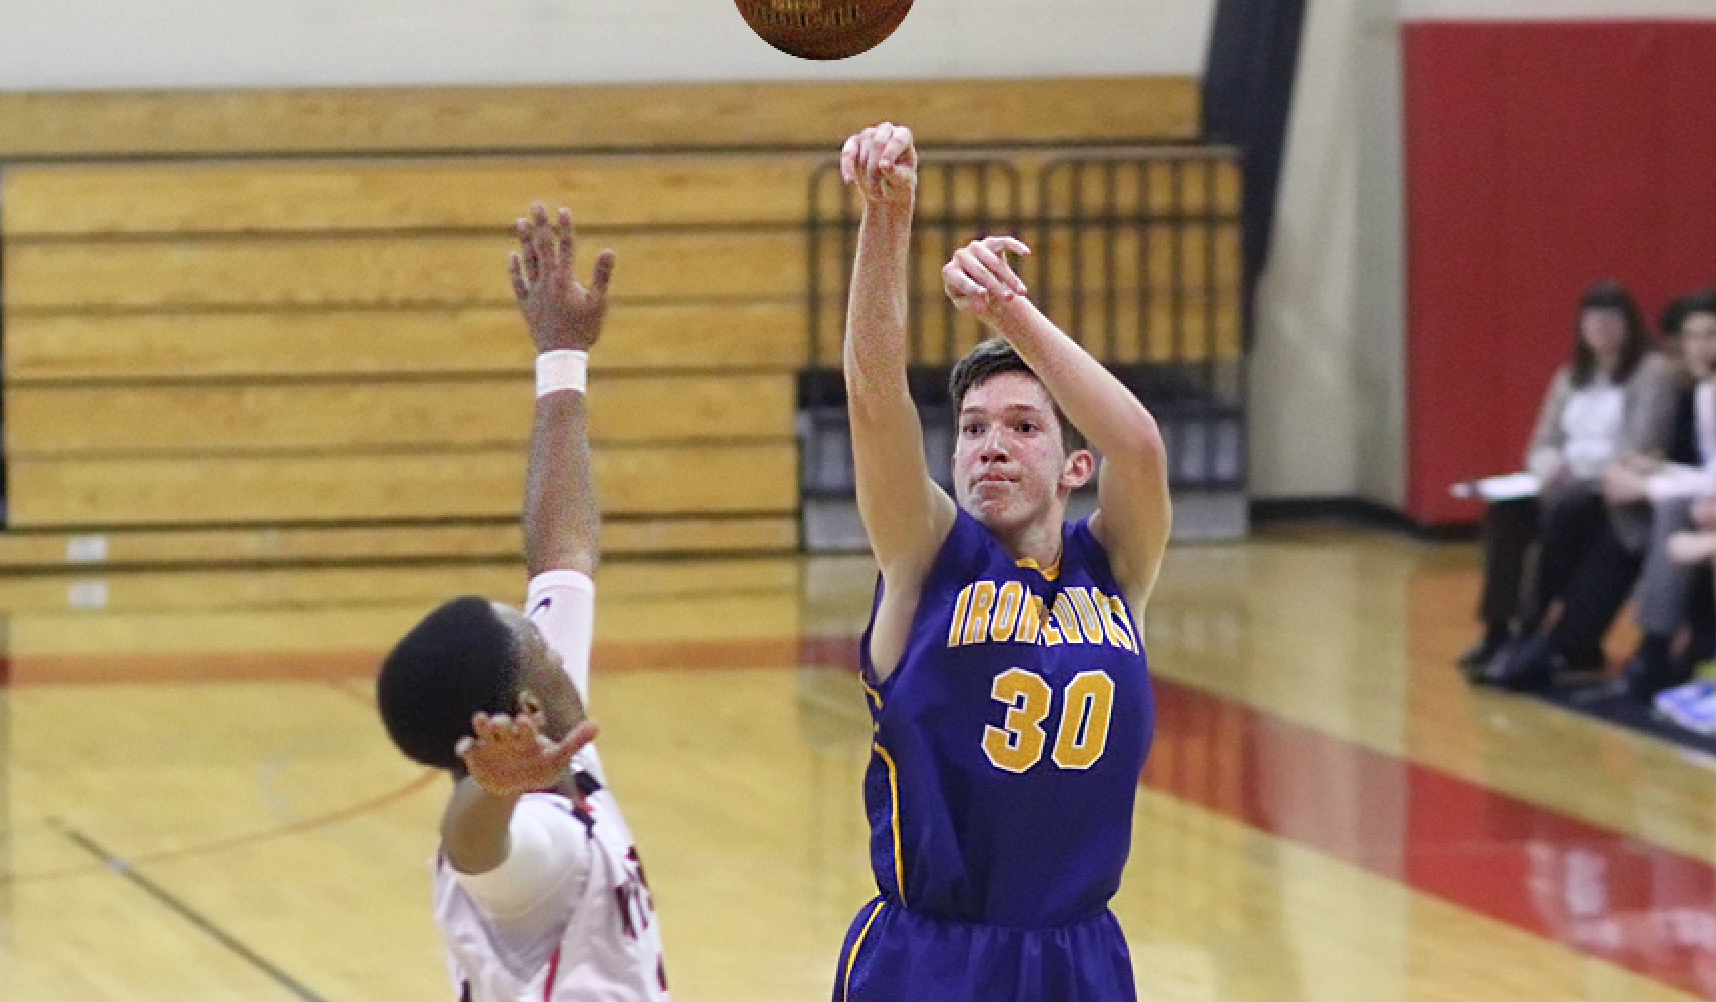 Irondequoit's Zach Stenglein scored a game-high 25 points and handed out seven assists. (Photo:Ron Kalasinskas)